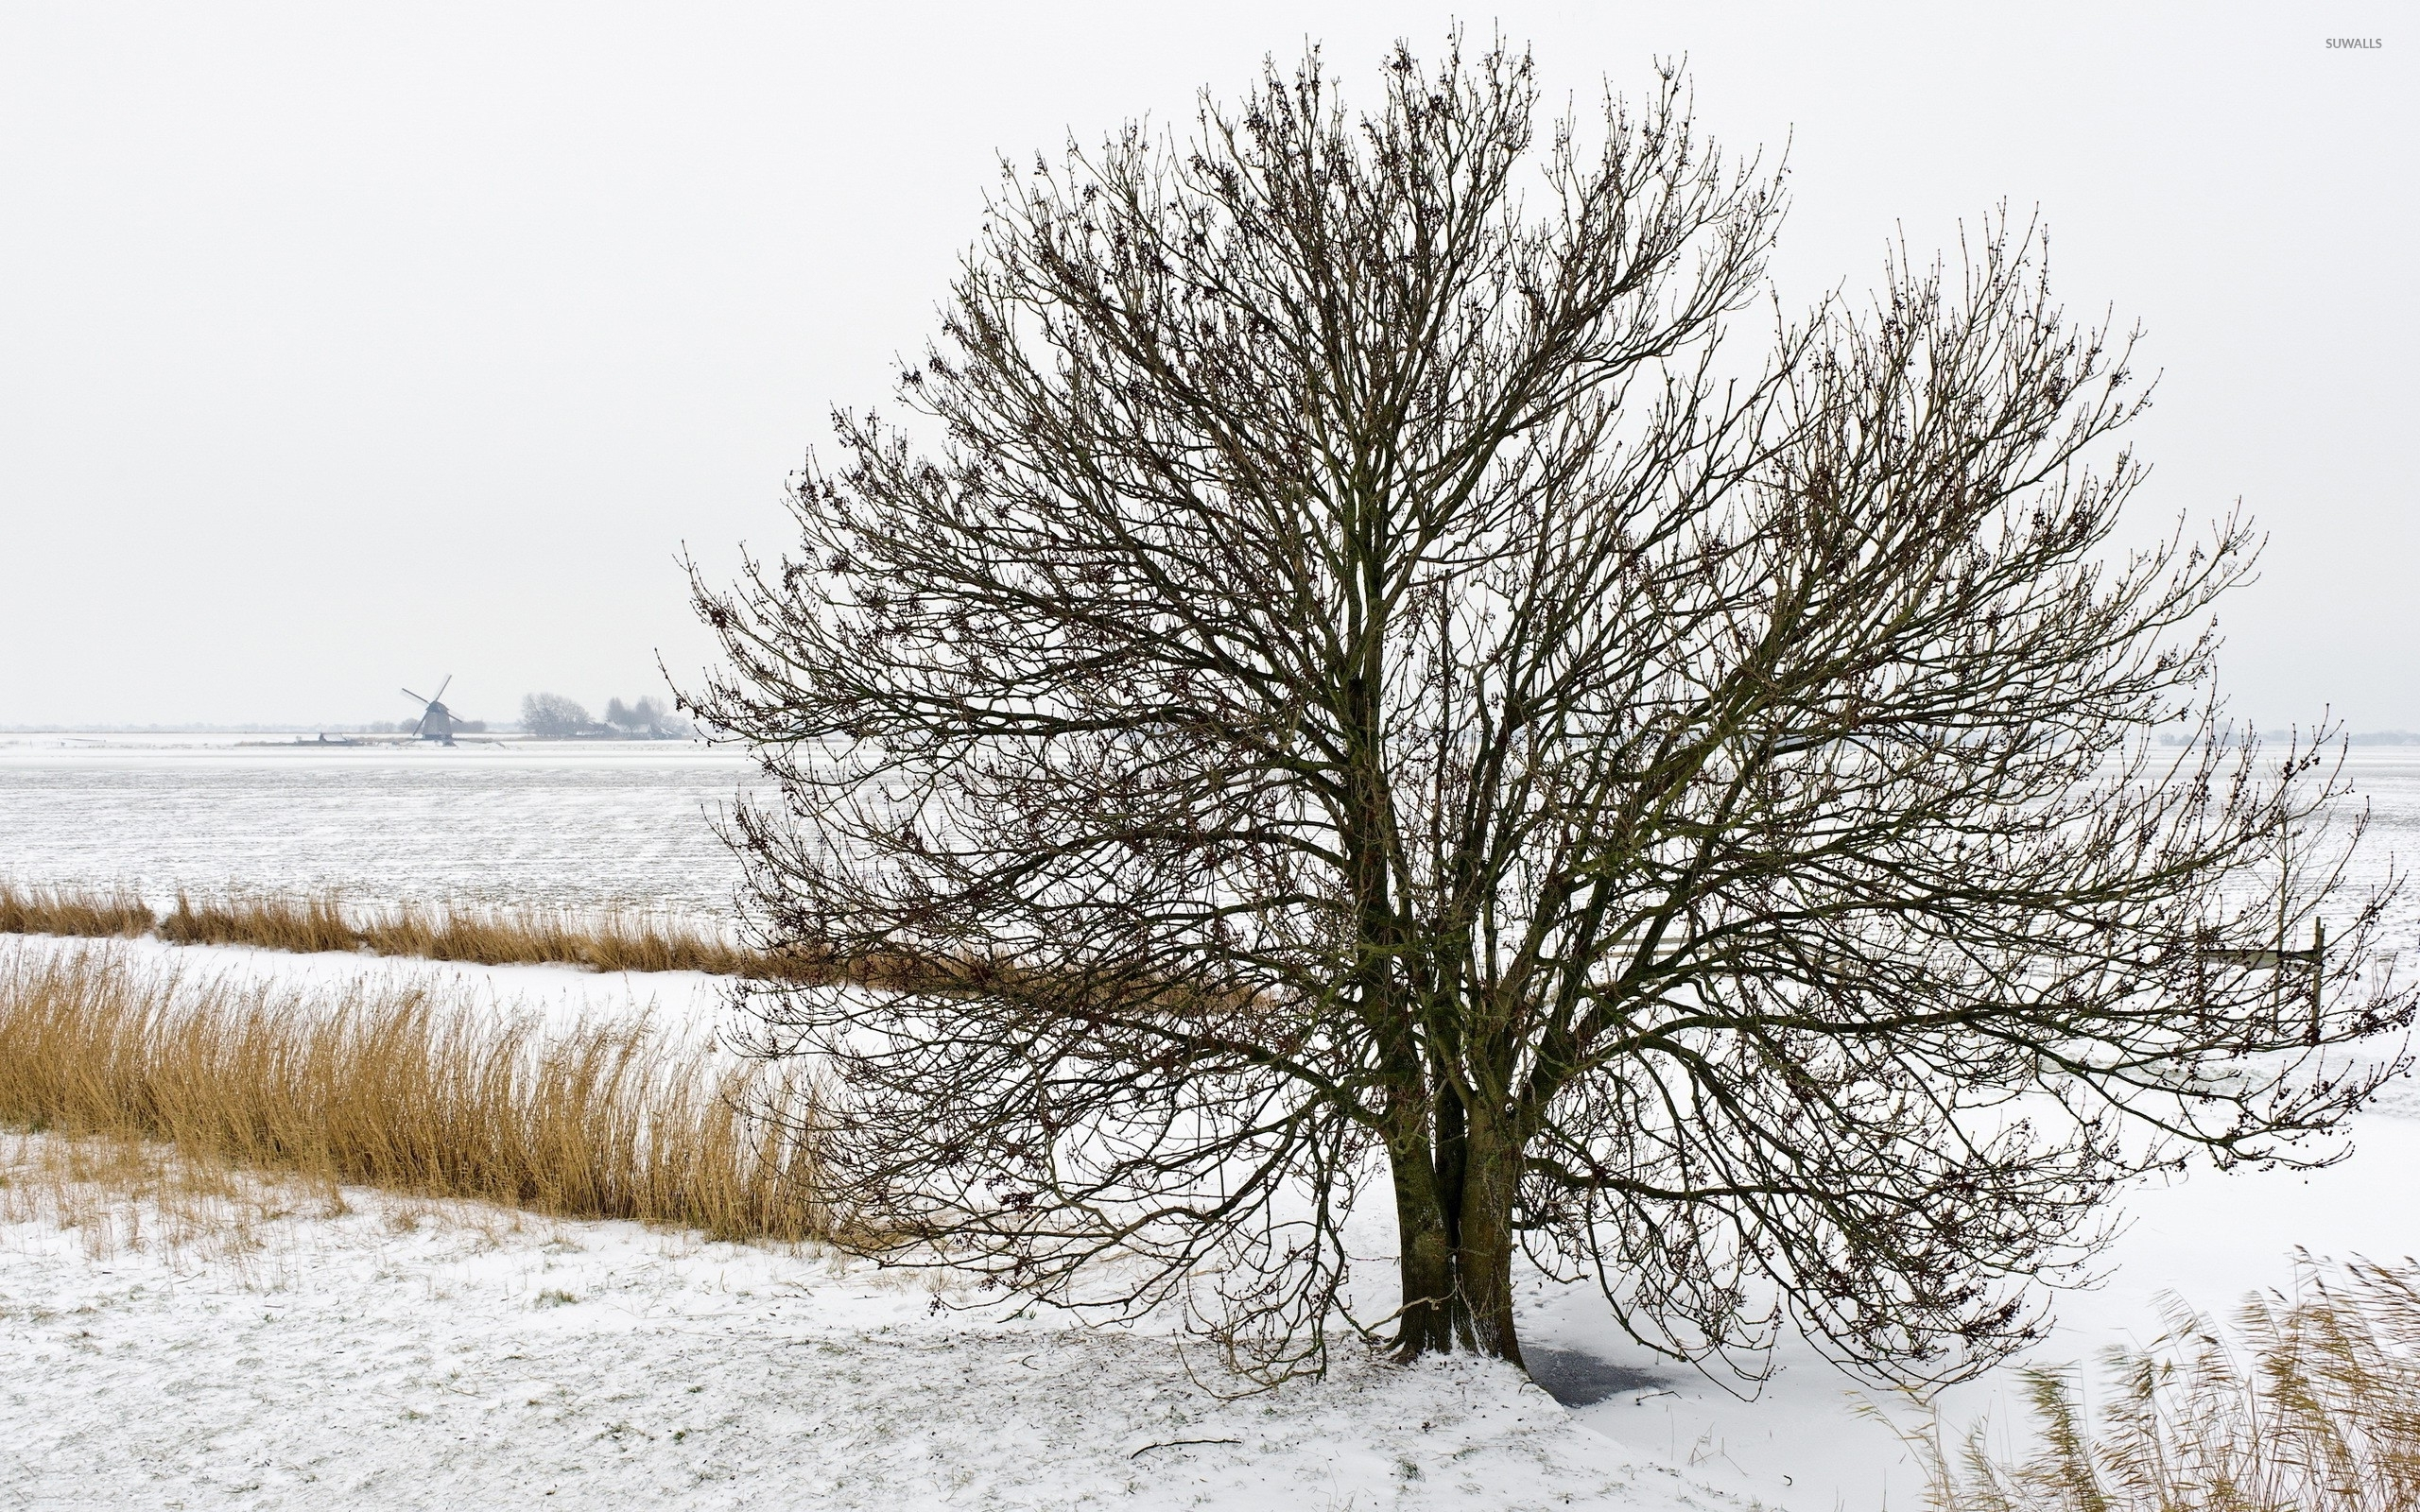 Lonesome-tree-in-the-snowy-nature-2560×1600